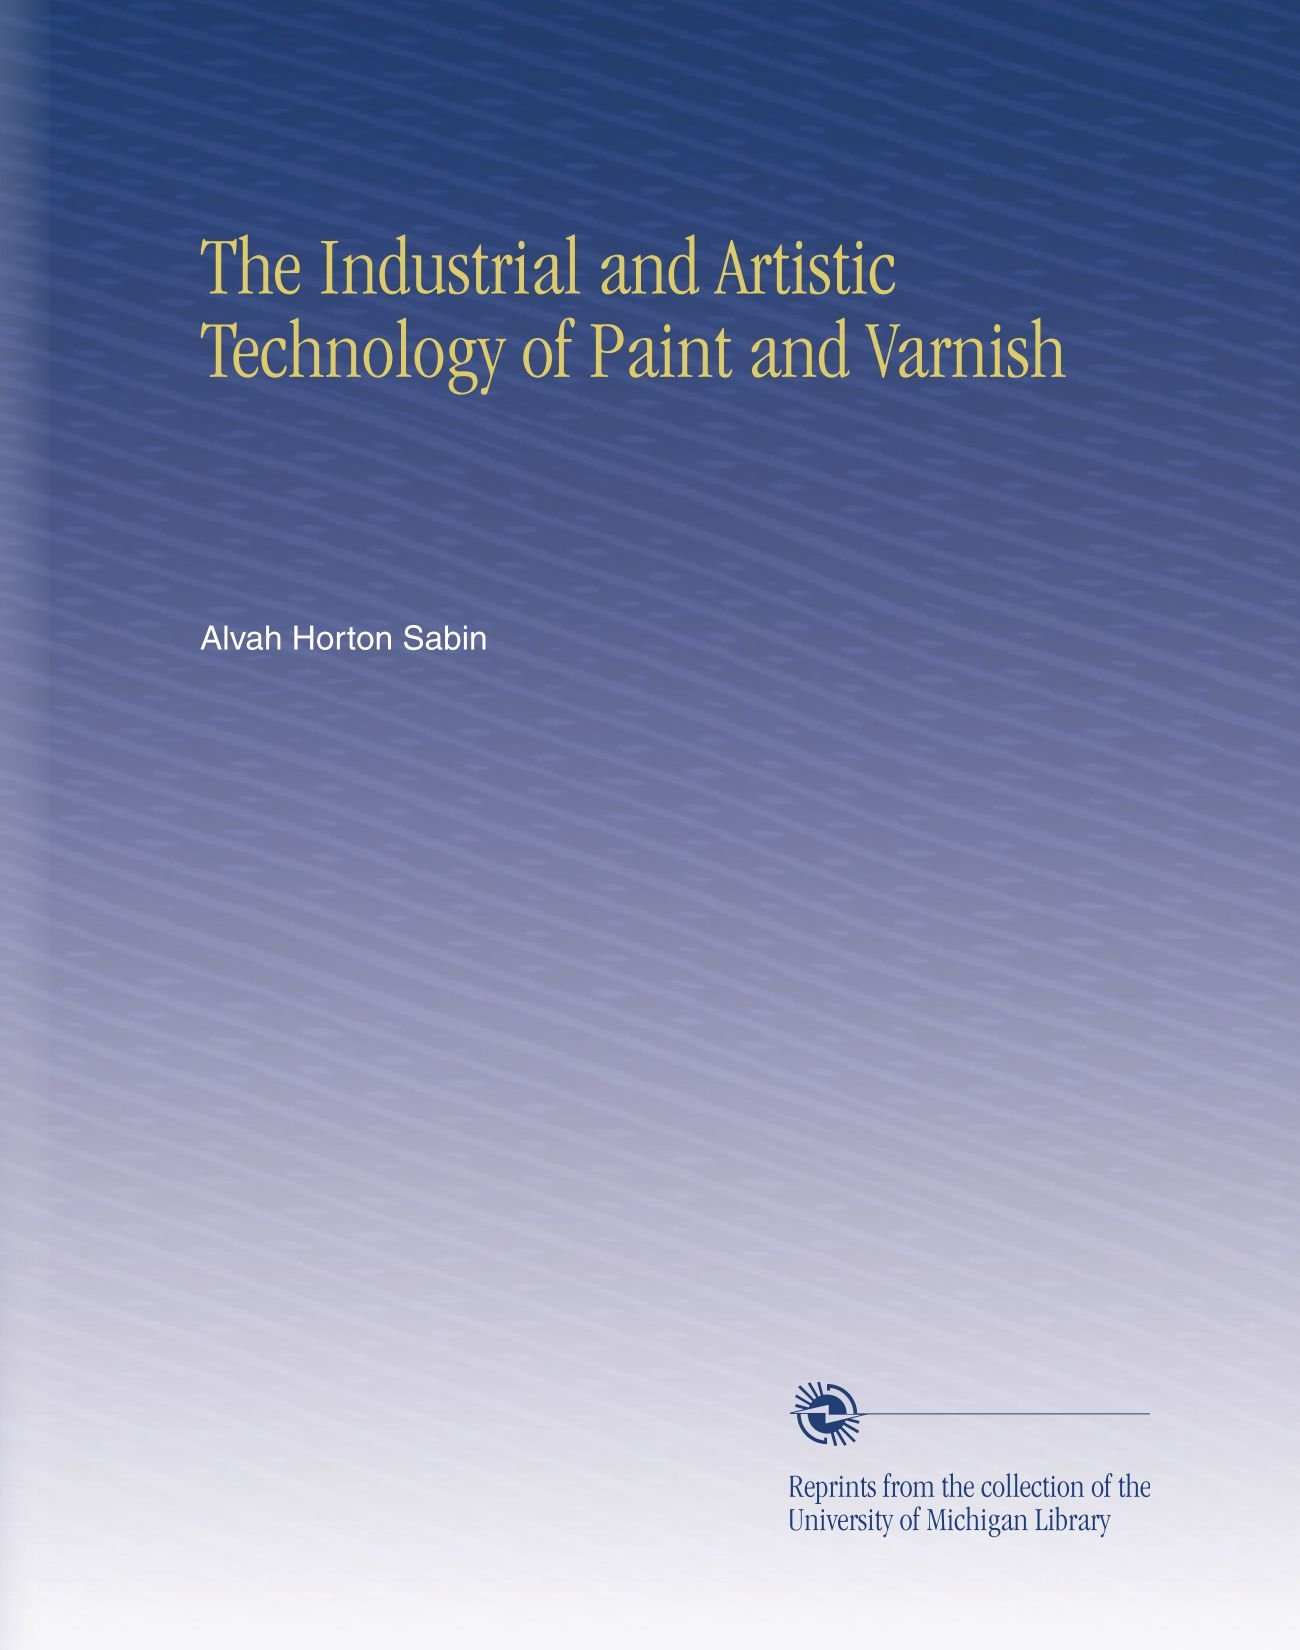 The Industrial and Artistic Technology of Paint and Varnish PDF